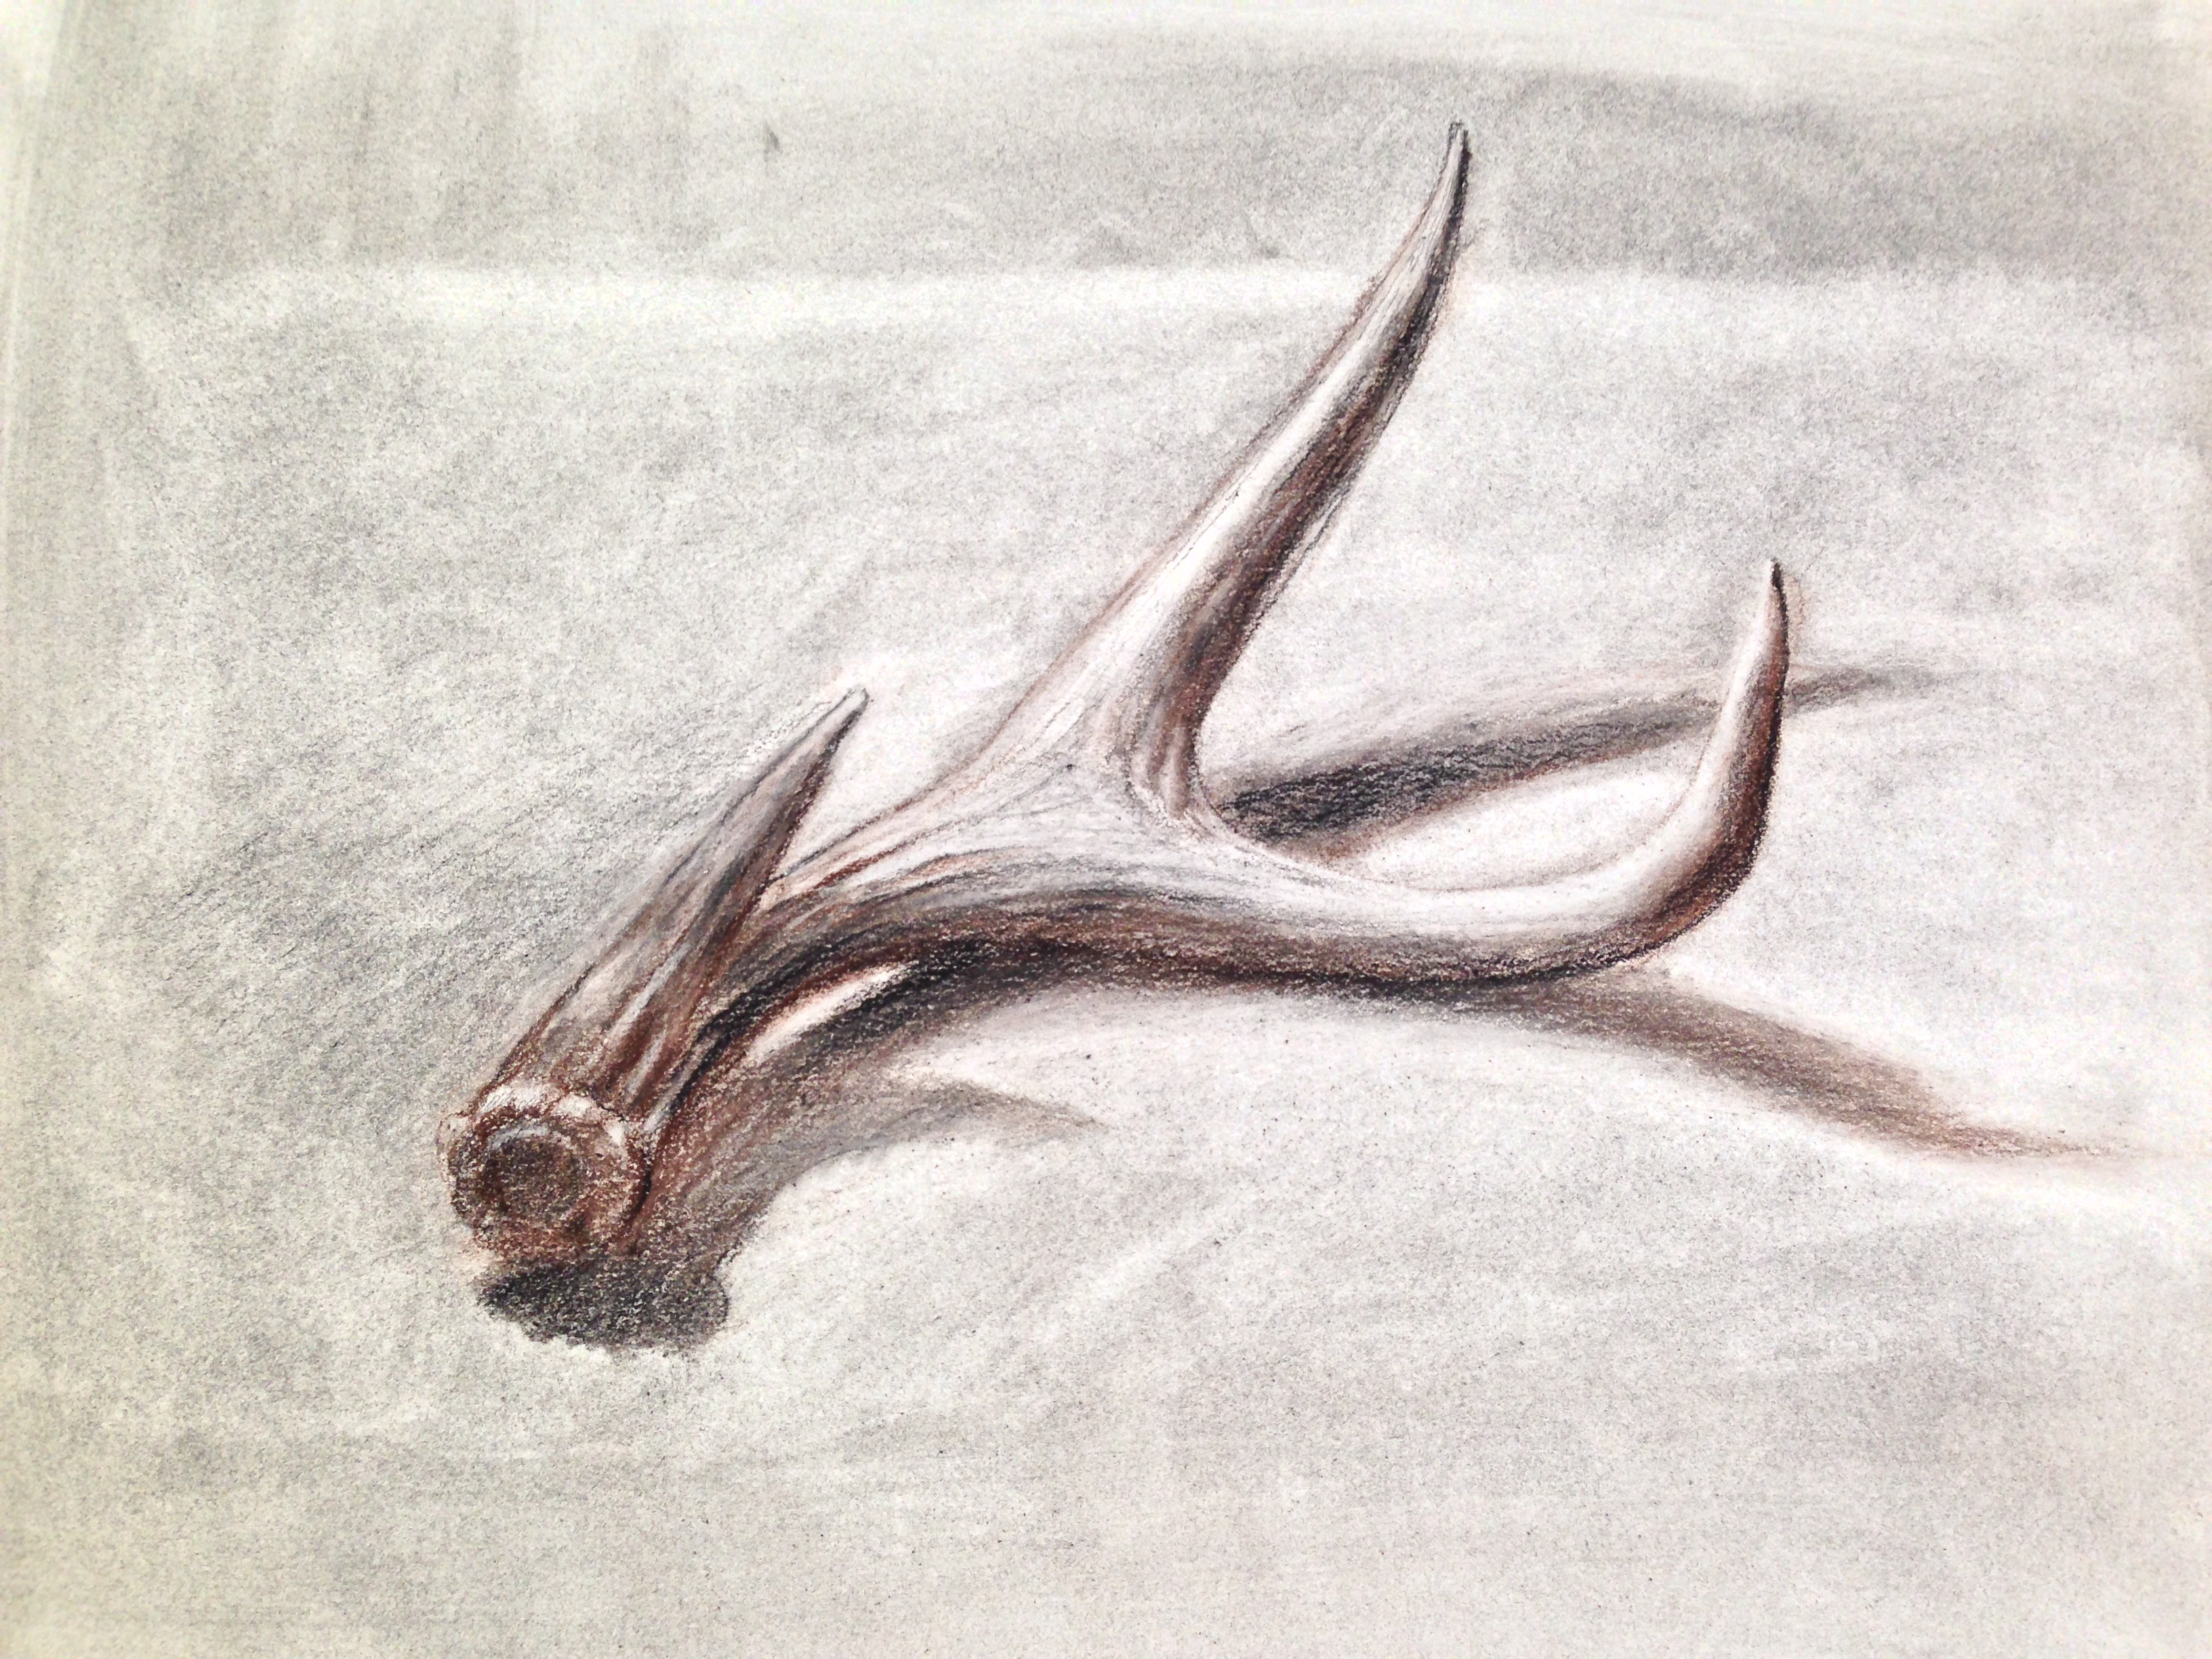 3264x2448 Drawing Antlers In Black, White And Sepia Charcoal. Tucson